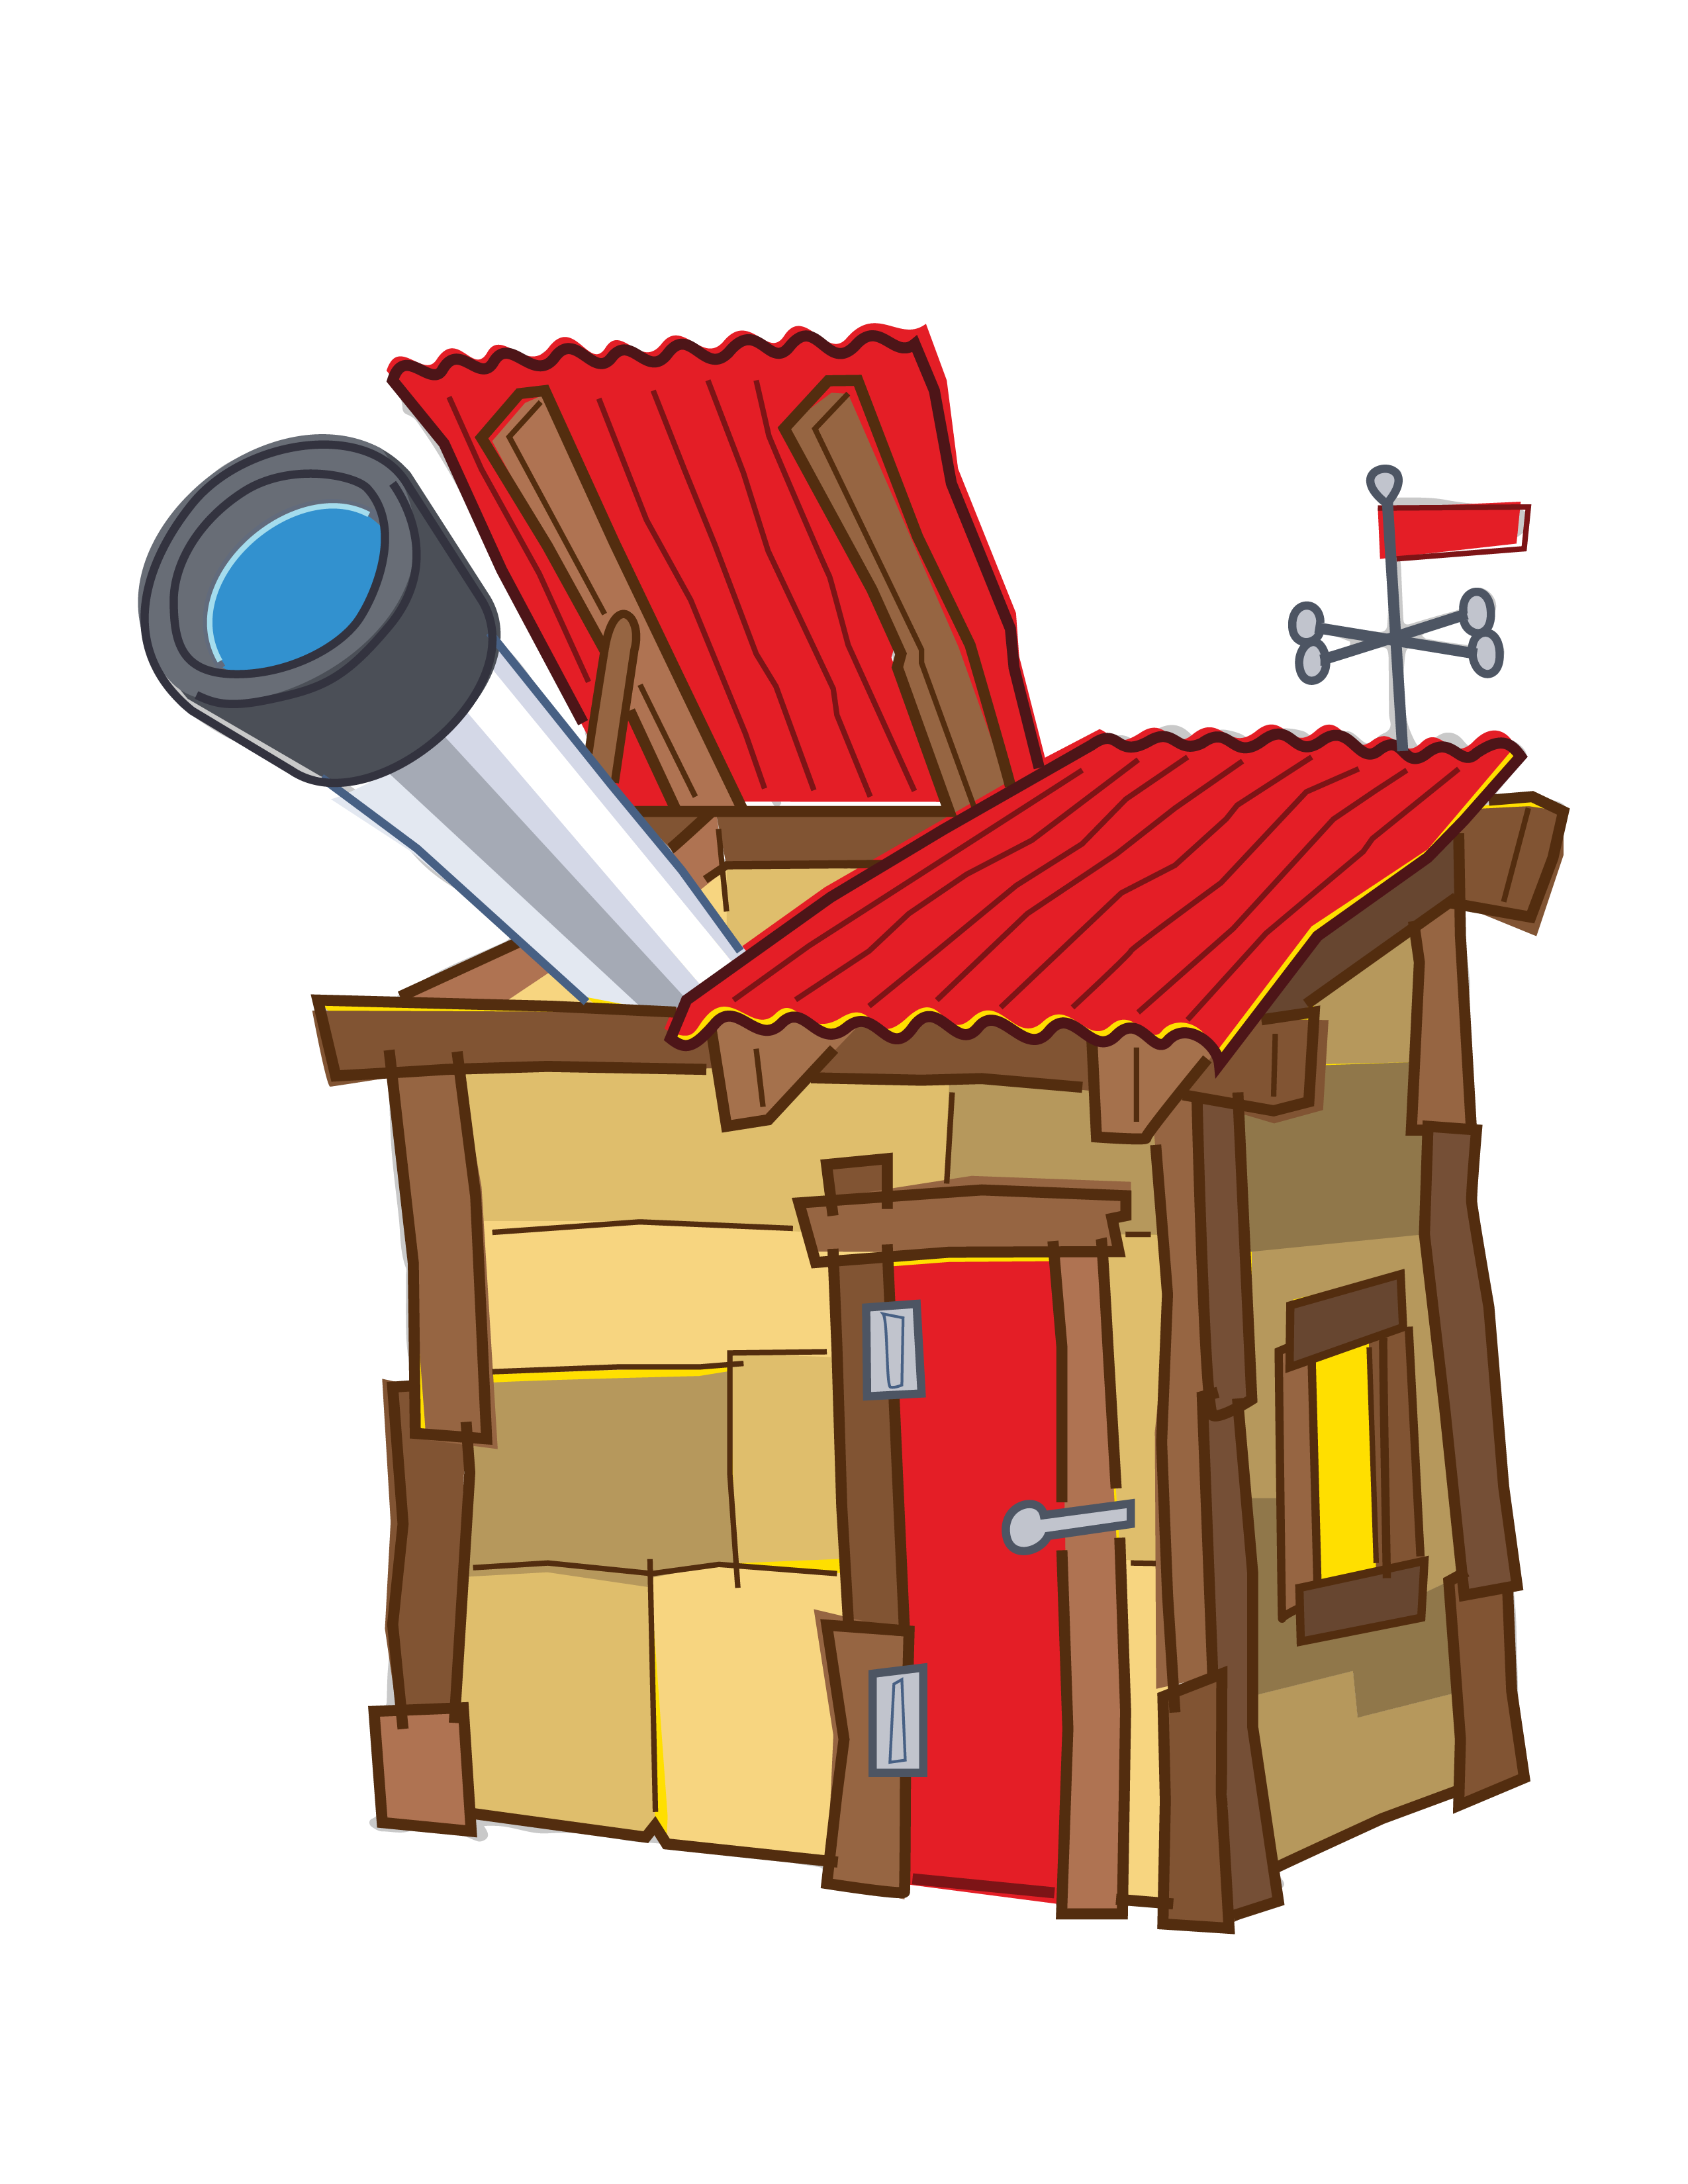 Clubhouse png vbs galactic. Planeten clipart starveyors